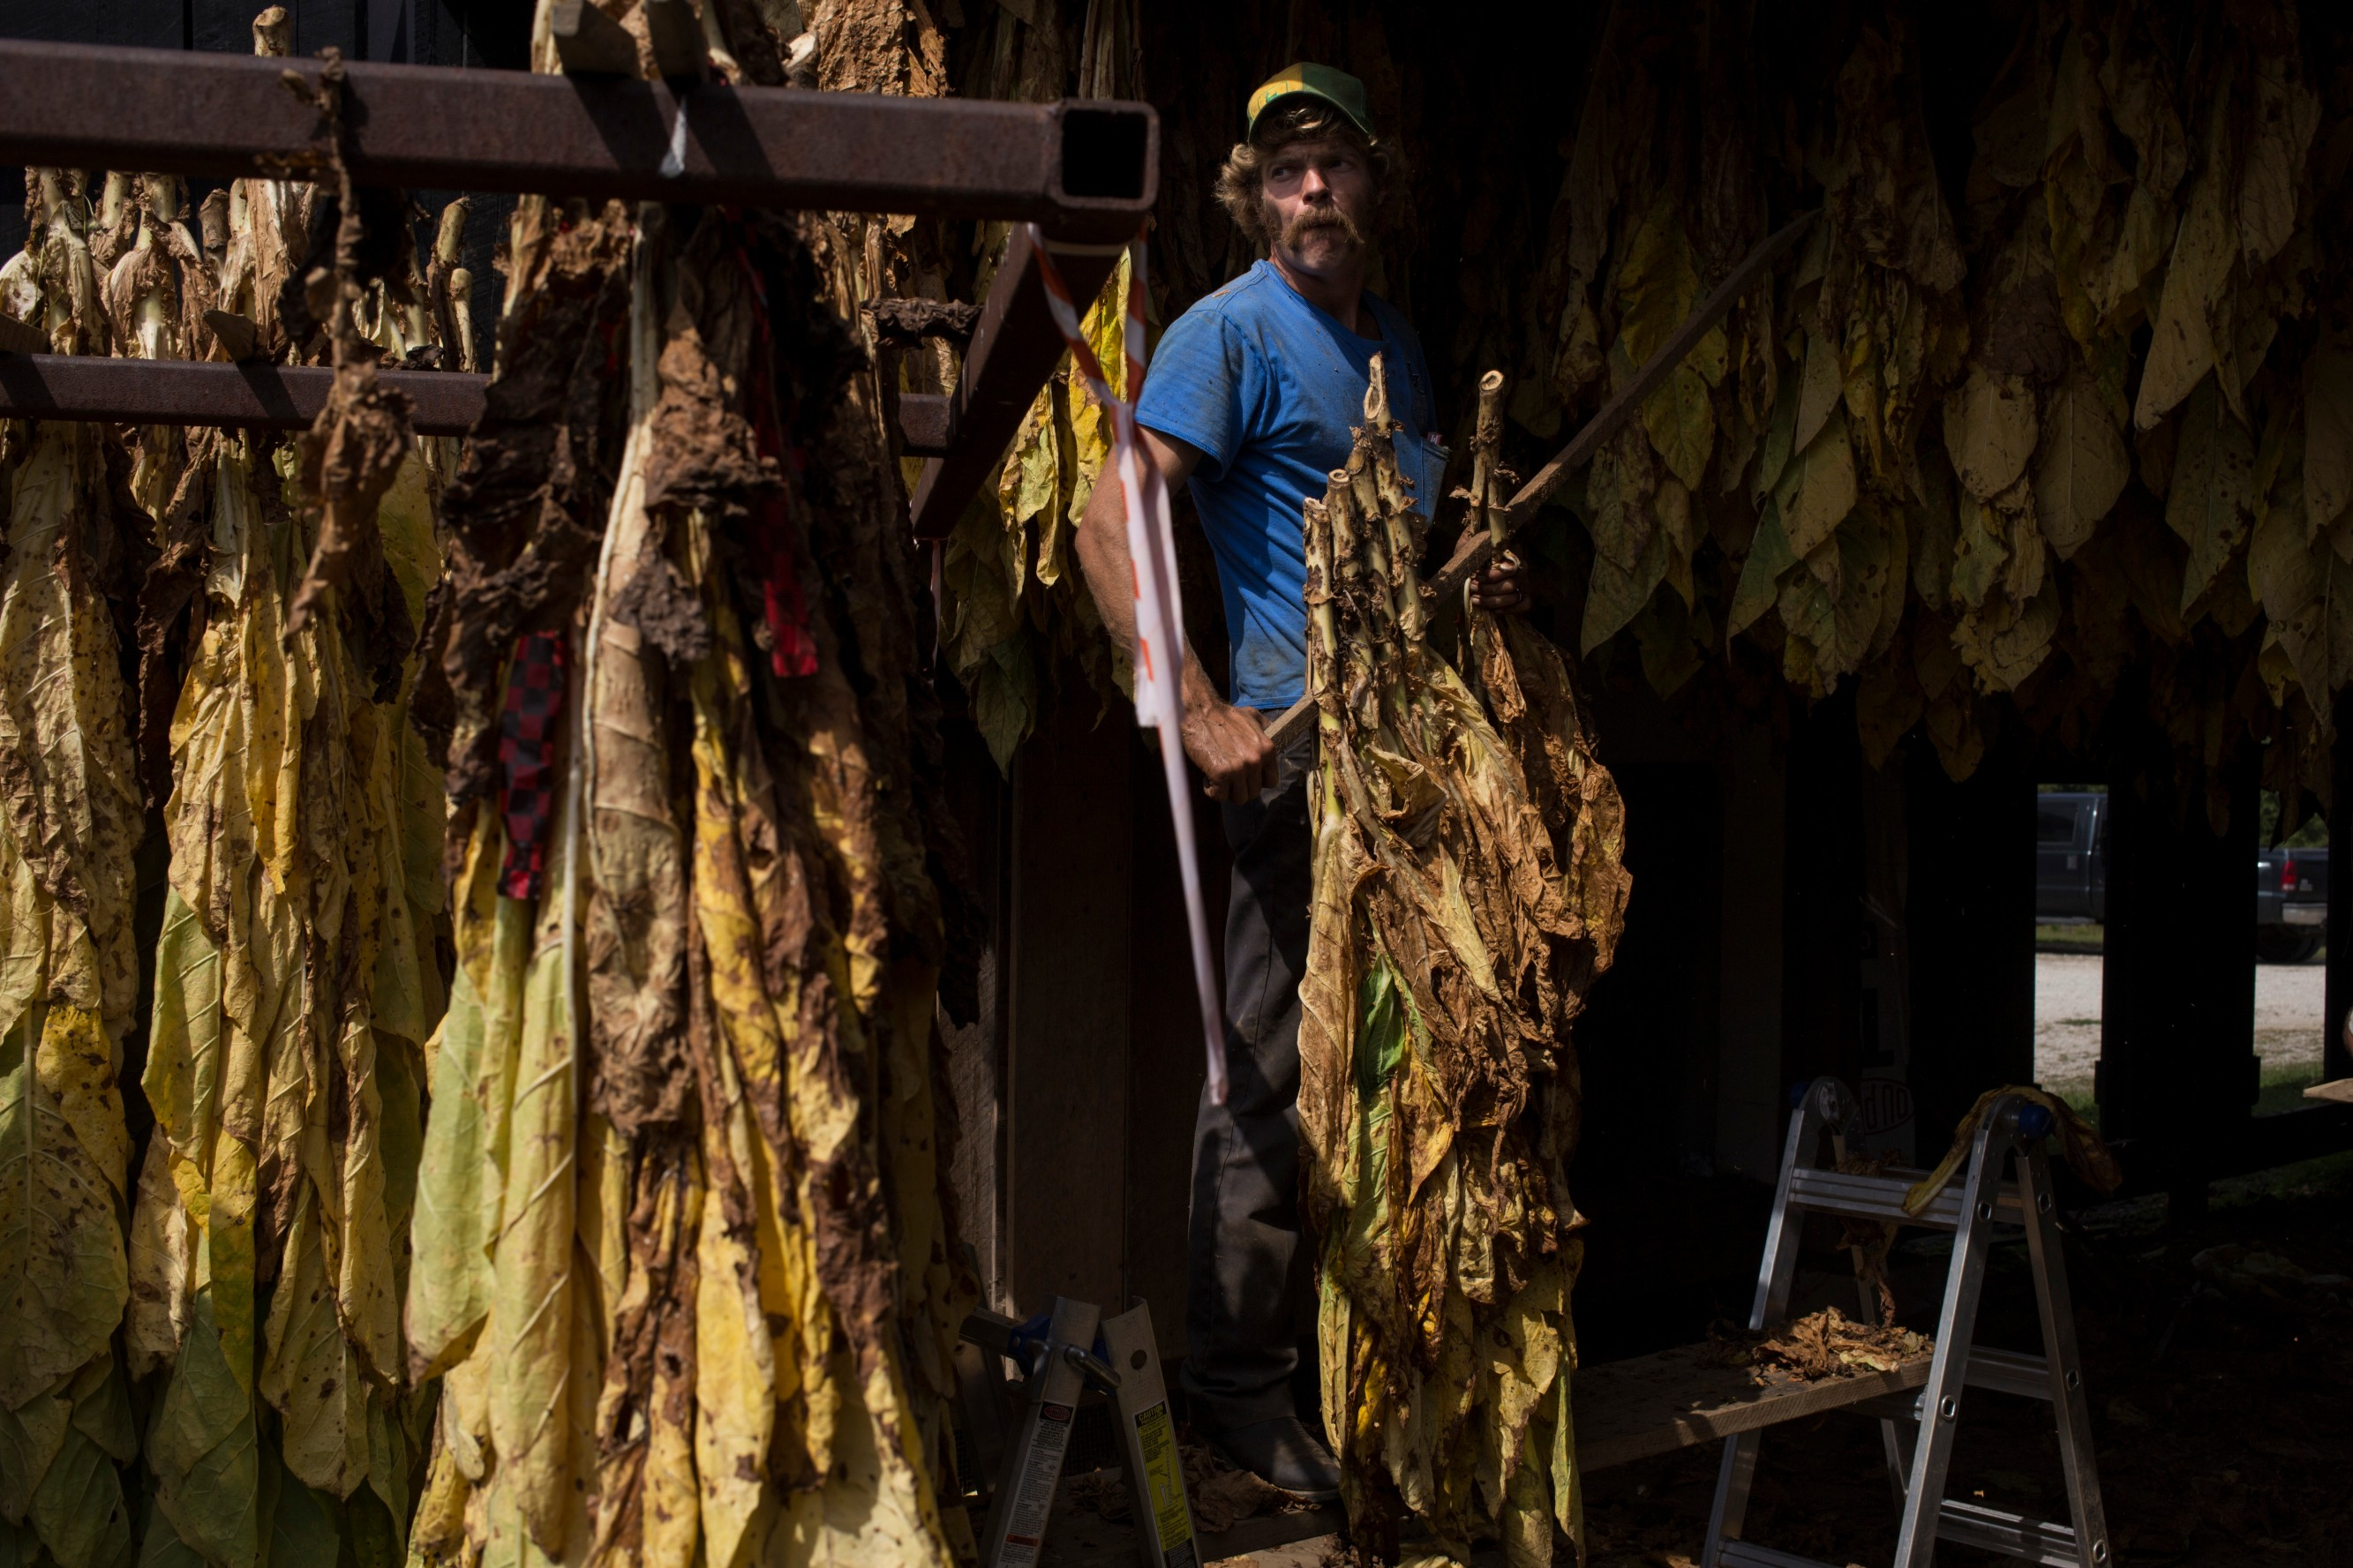 Thomas Morgan, 32, steadily lifts swaths of tobacco to be hung to dry at the Robinson Center for Appalachian Resource Sustainability in Quicksand, Ky., on Monday, September 27, 2017. (Photo by Brittany Greeson/GroundTruth)